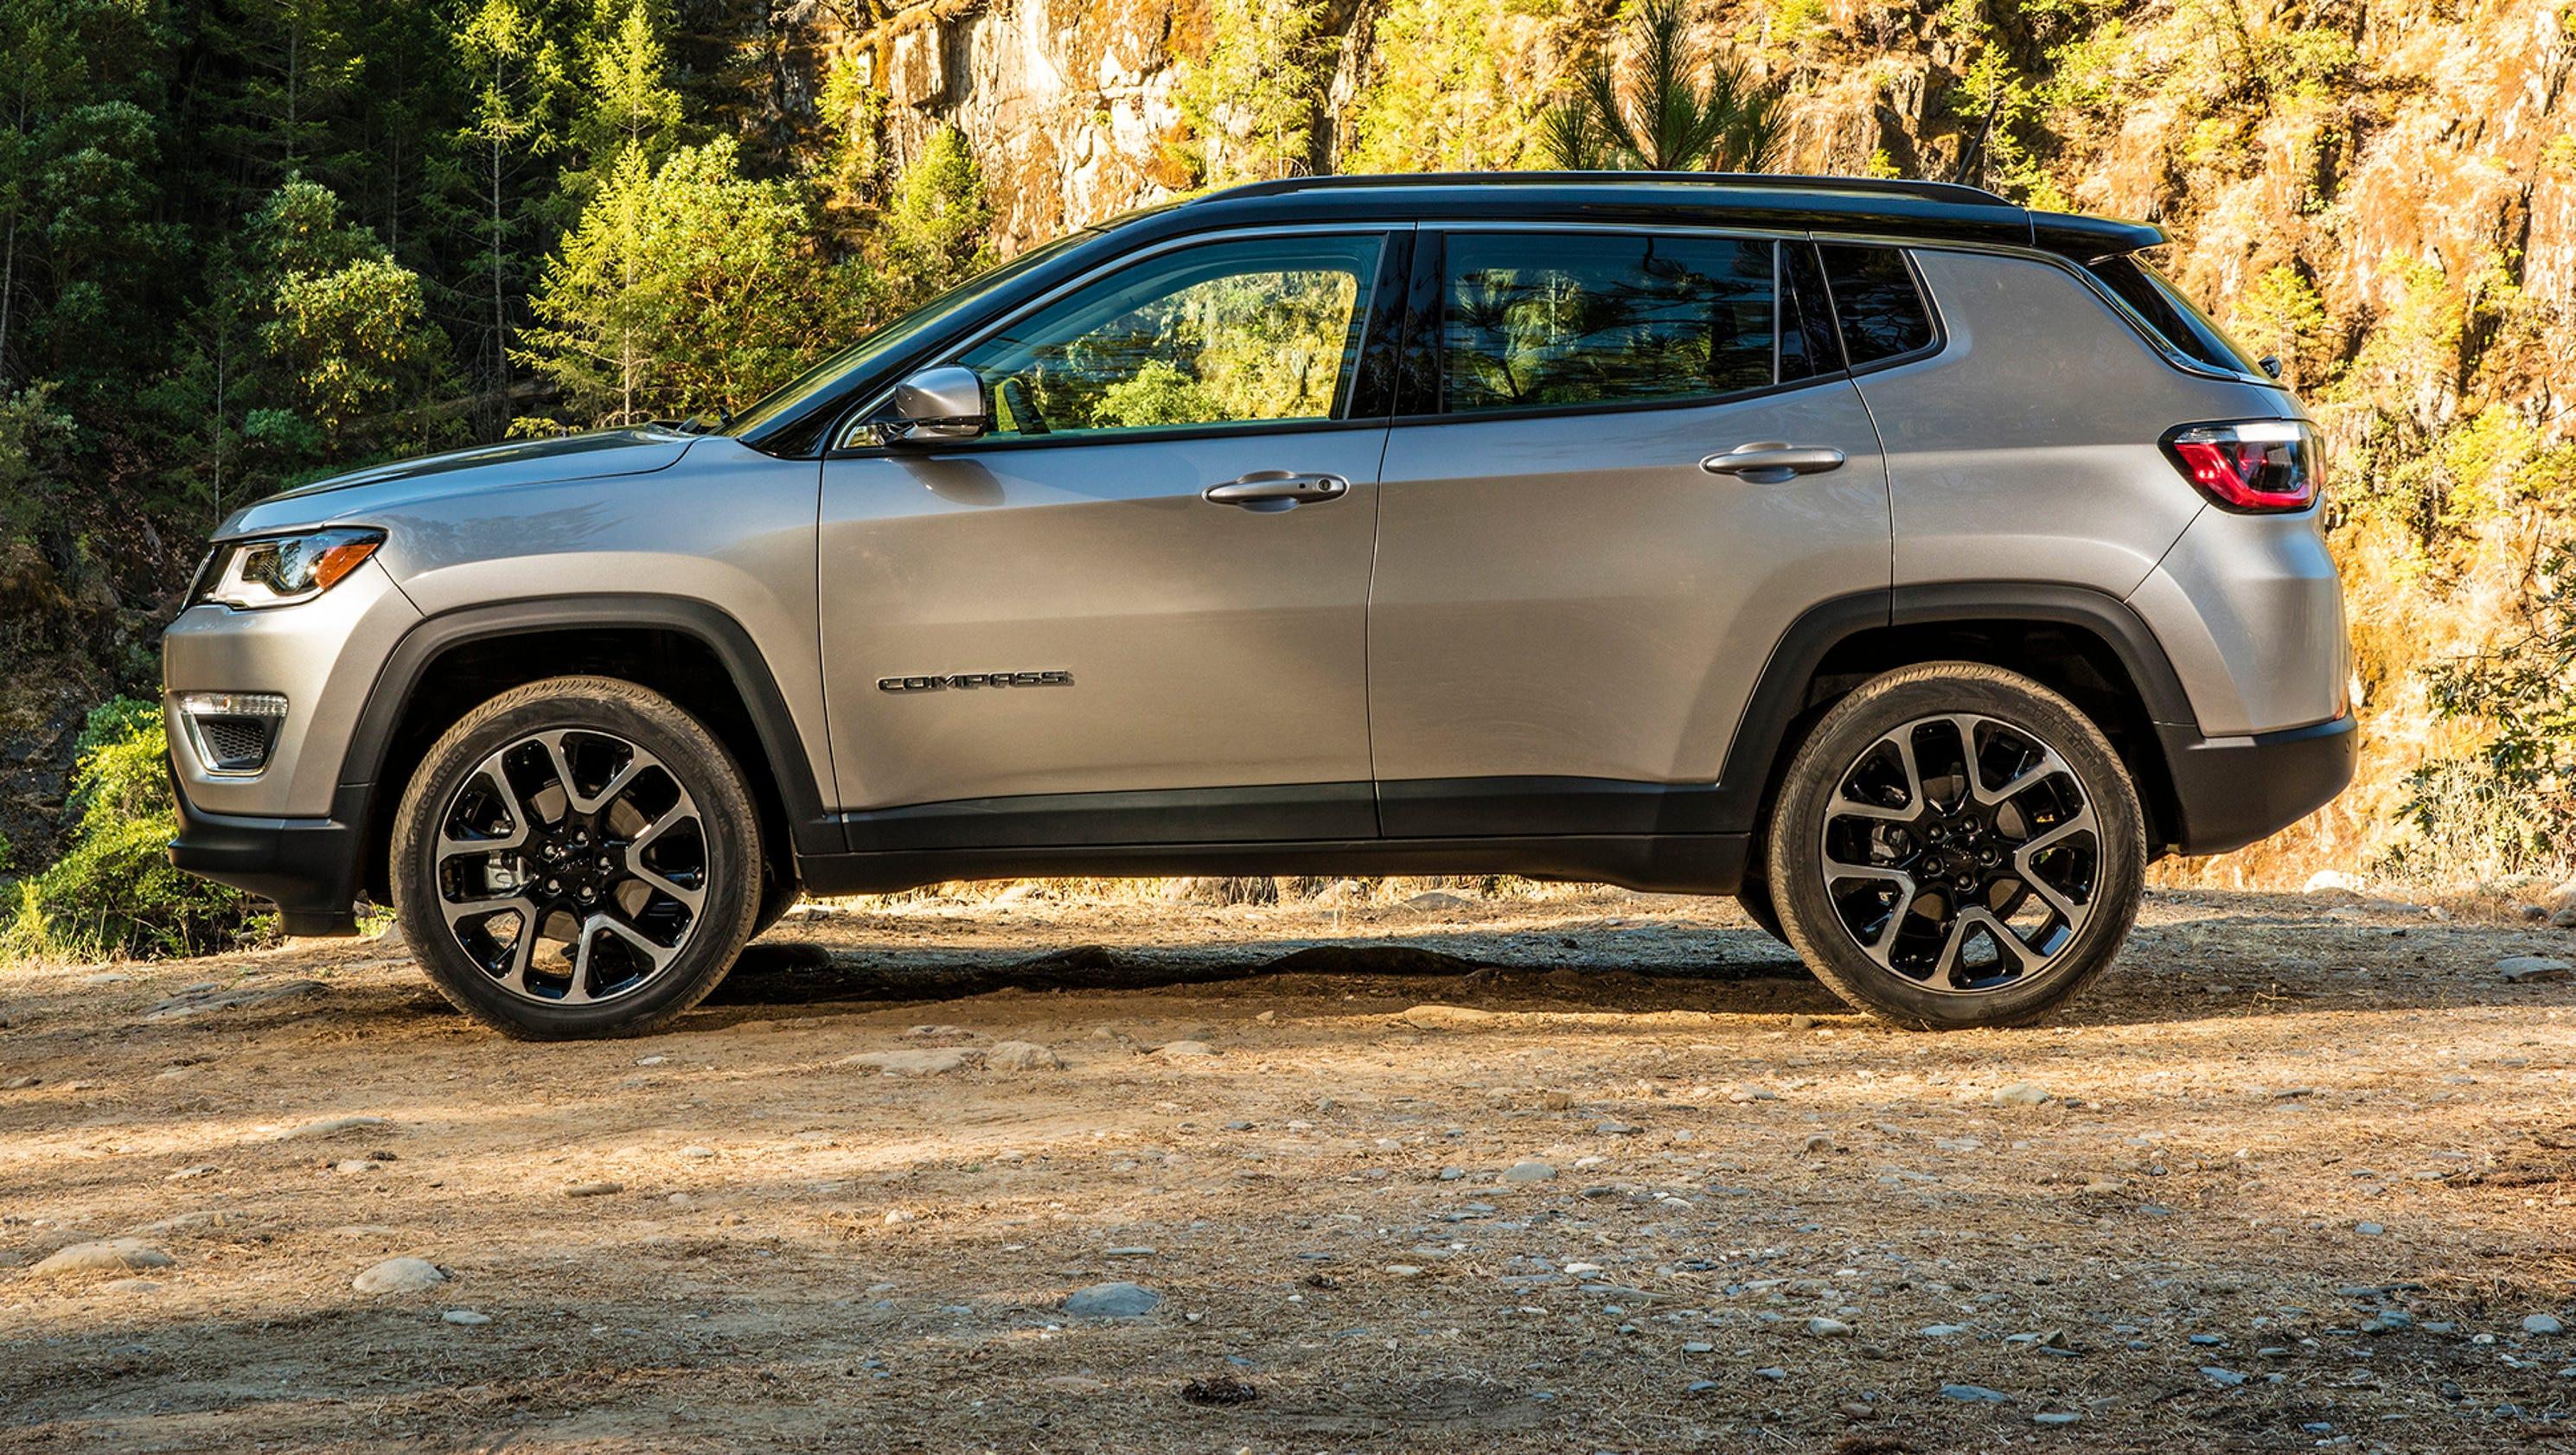 review new jeep compass points to offroad fun. Black Bedroom Furniture Sets. Home Design Ideas